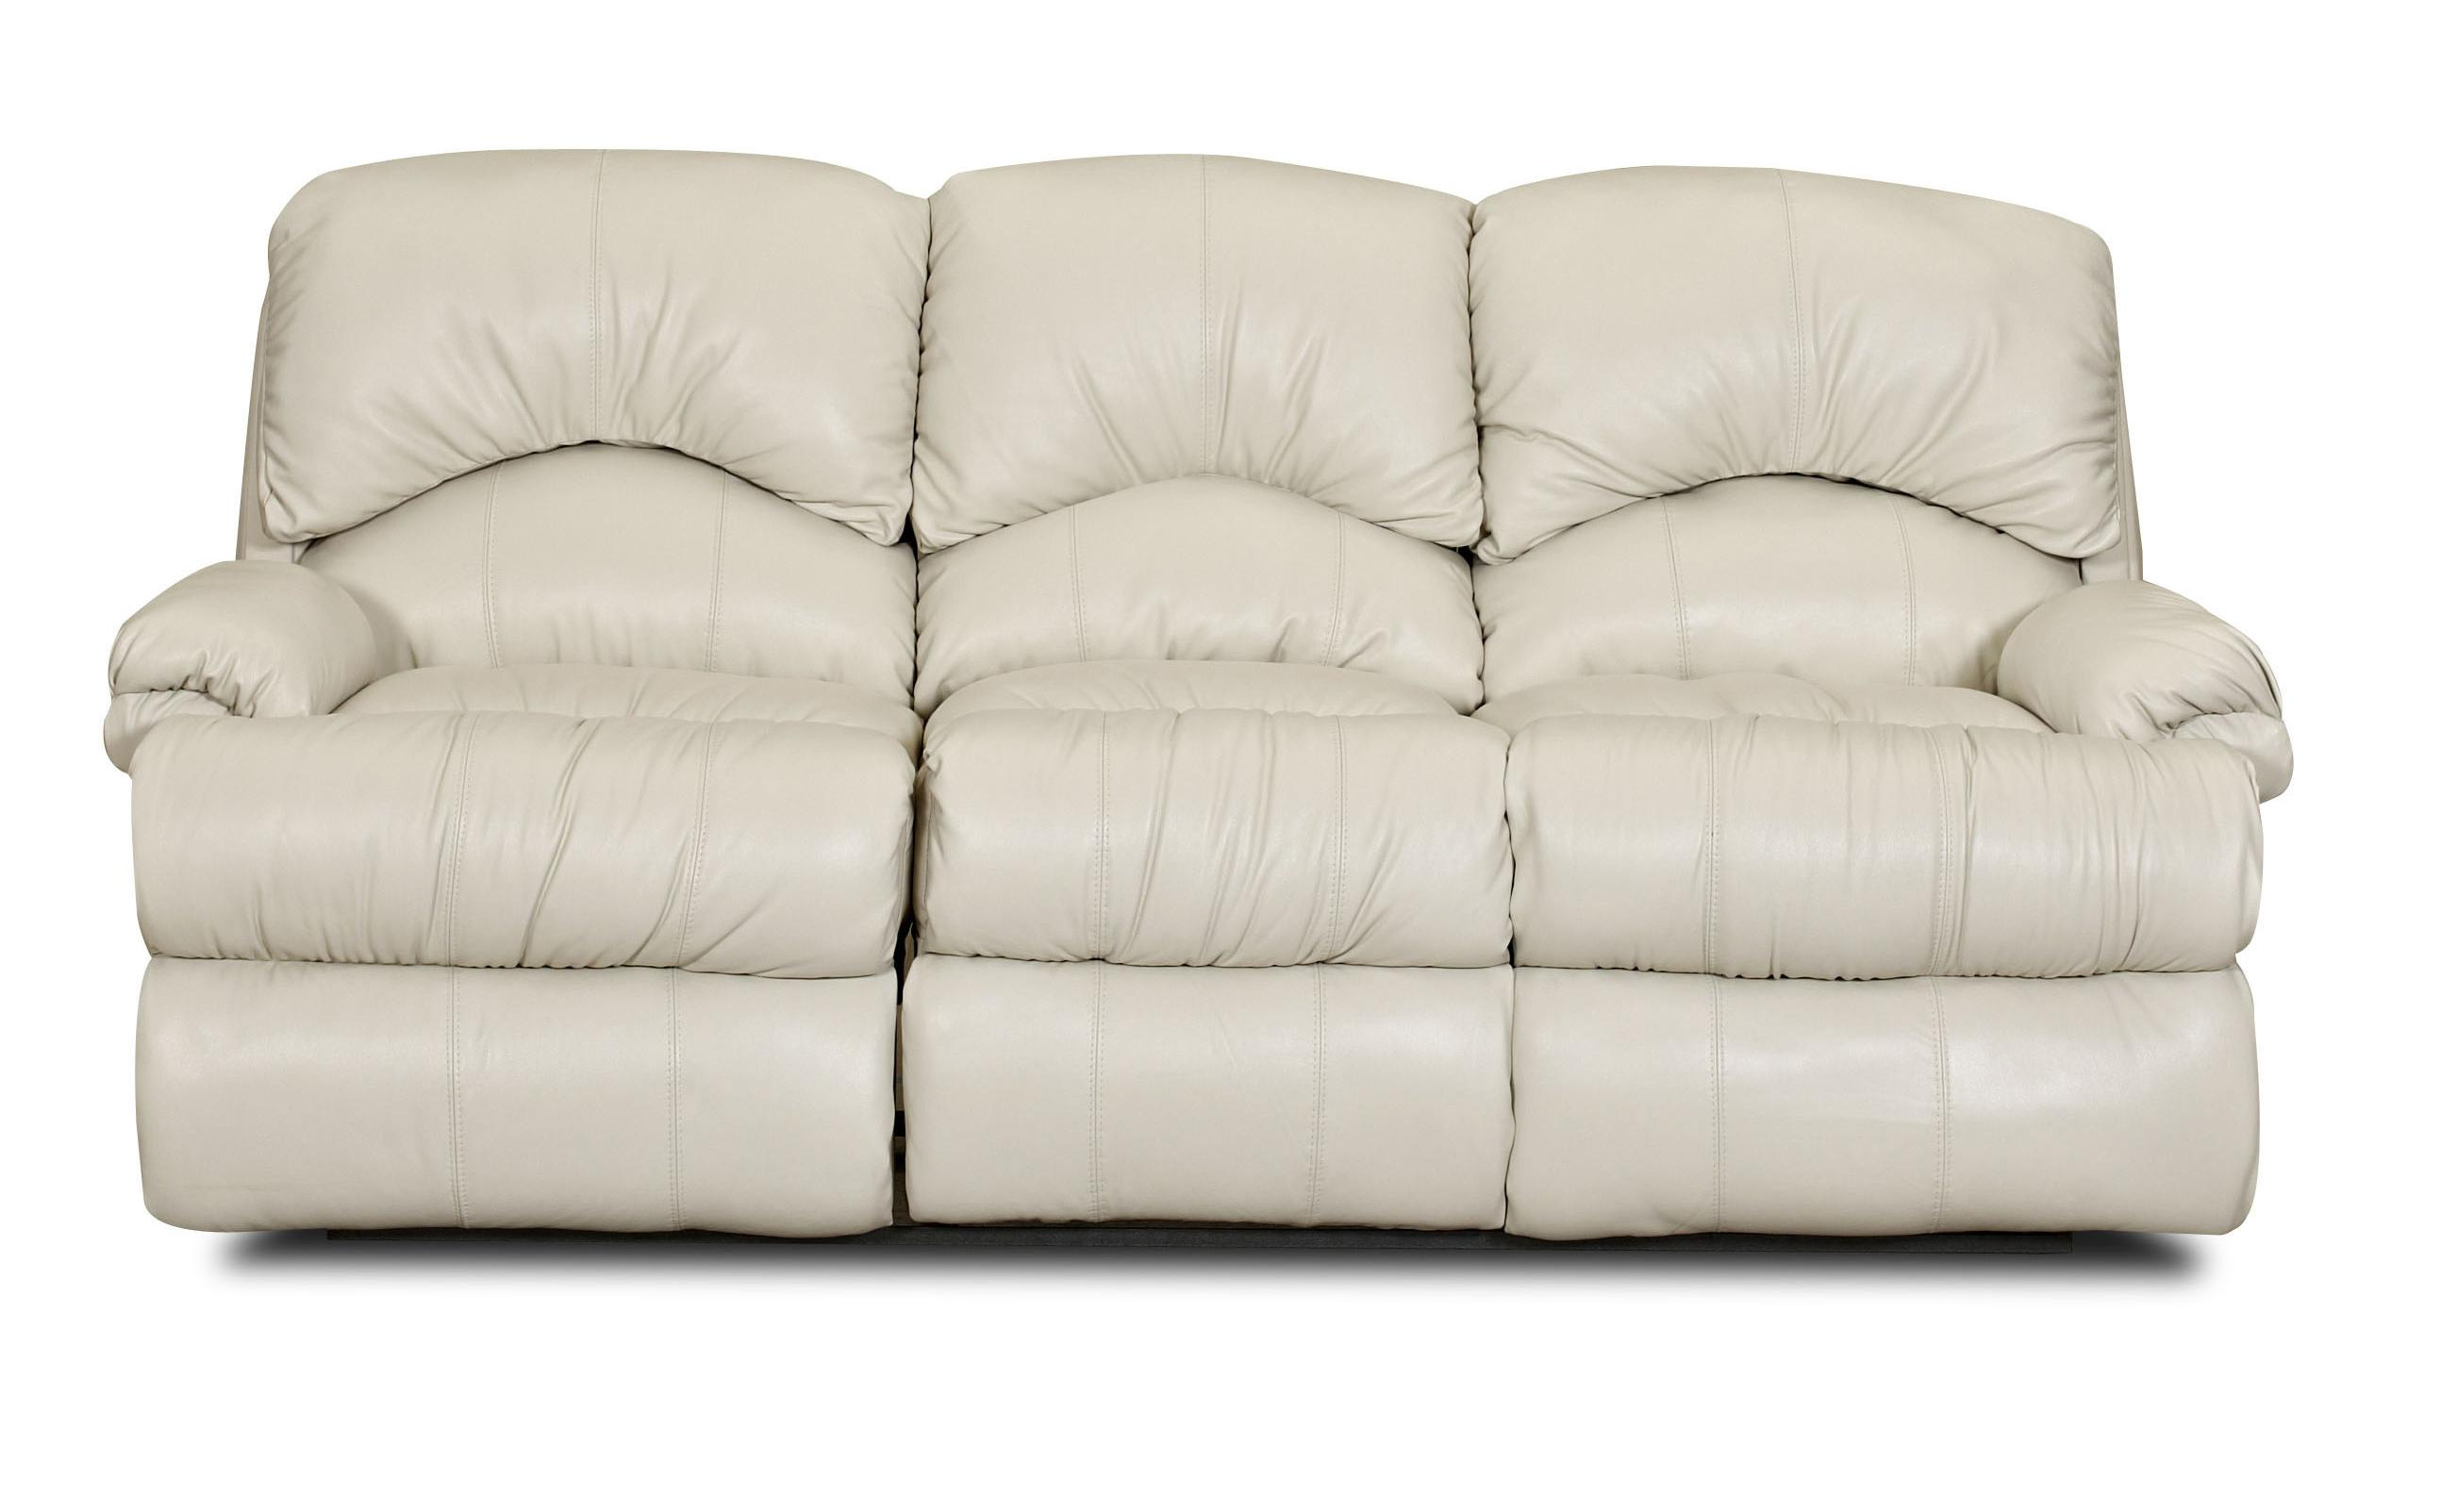 Klaussner Phoenix II Casual Power Reclining Sofa - Item Number: L44803 PWRS